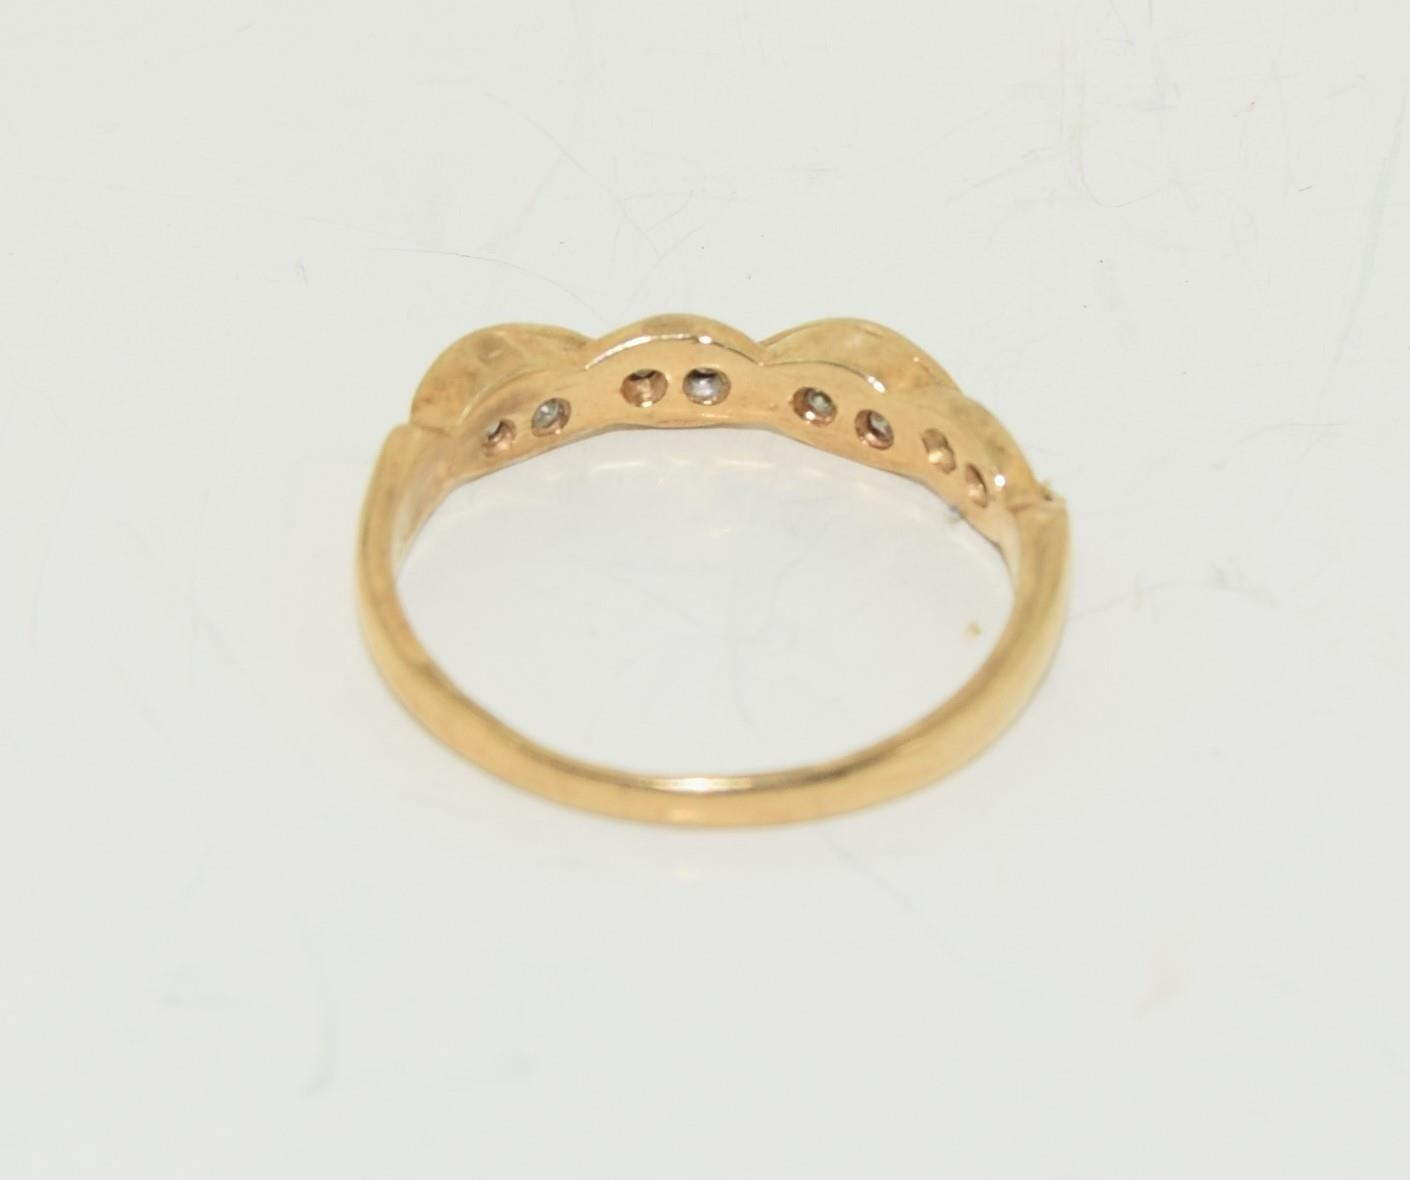 9ct gold half eternity ring. Size K - Image 3 of 3